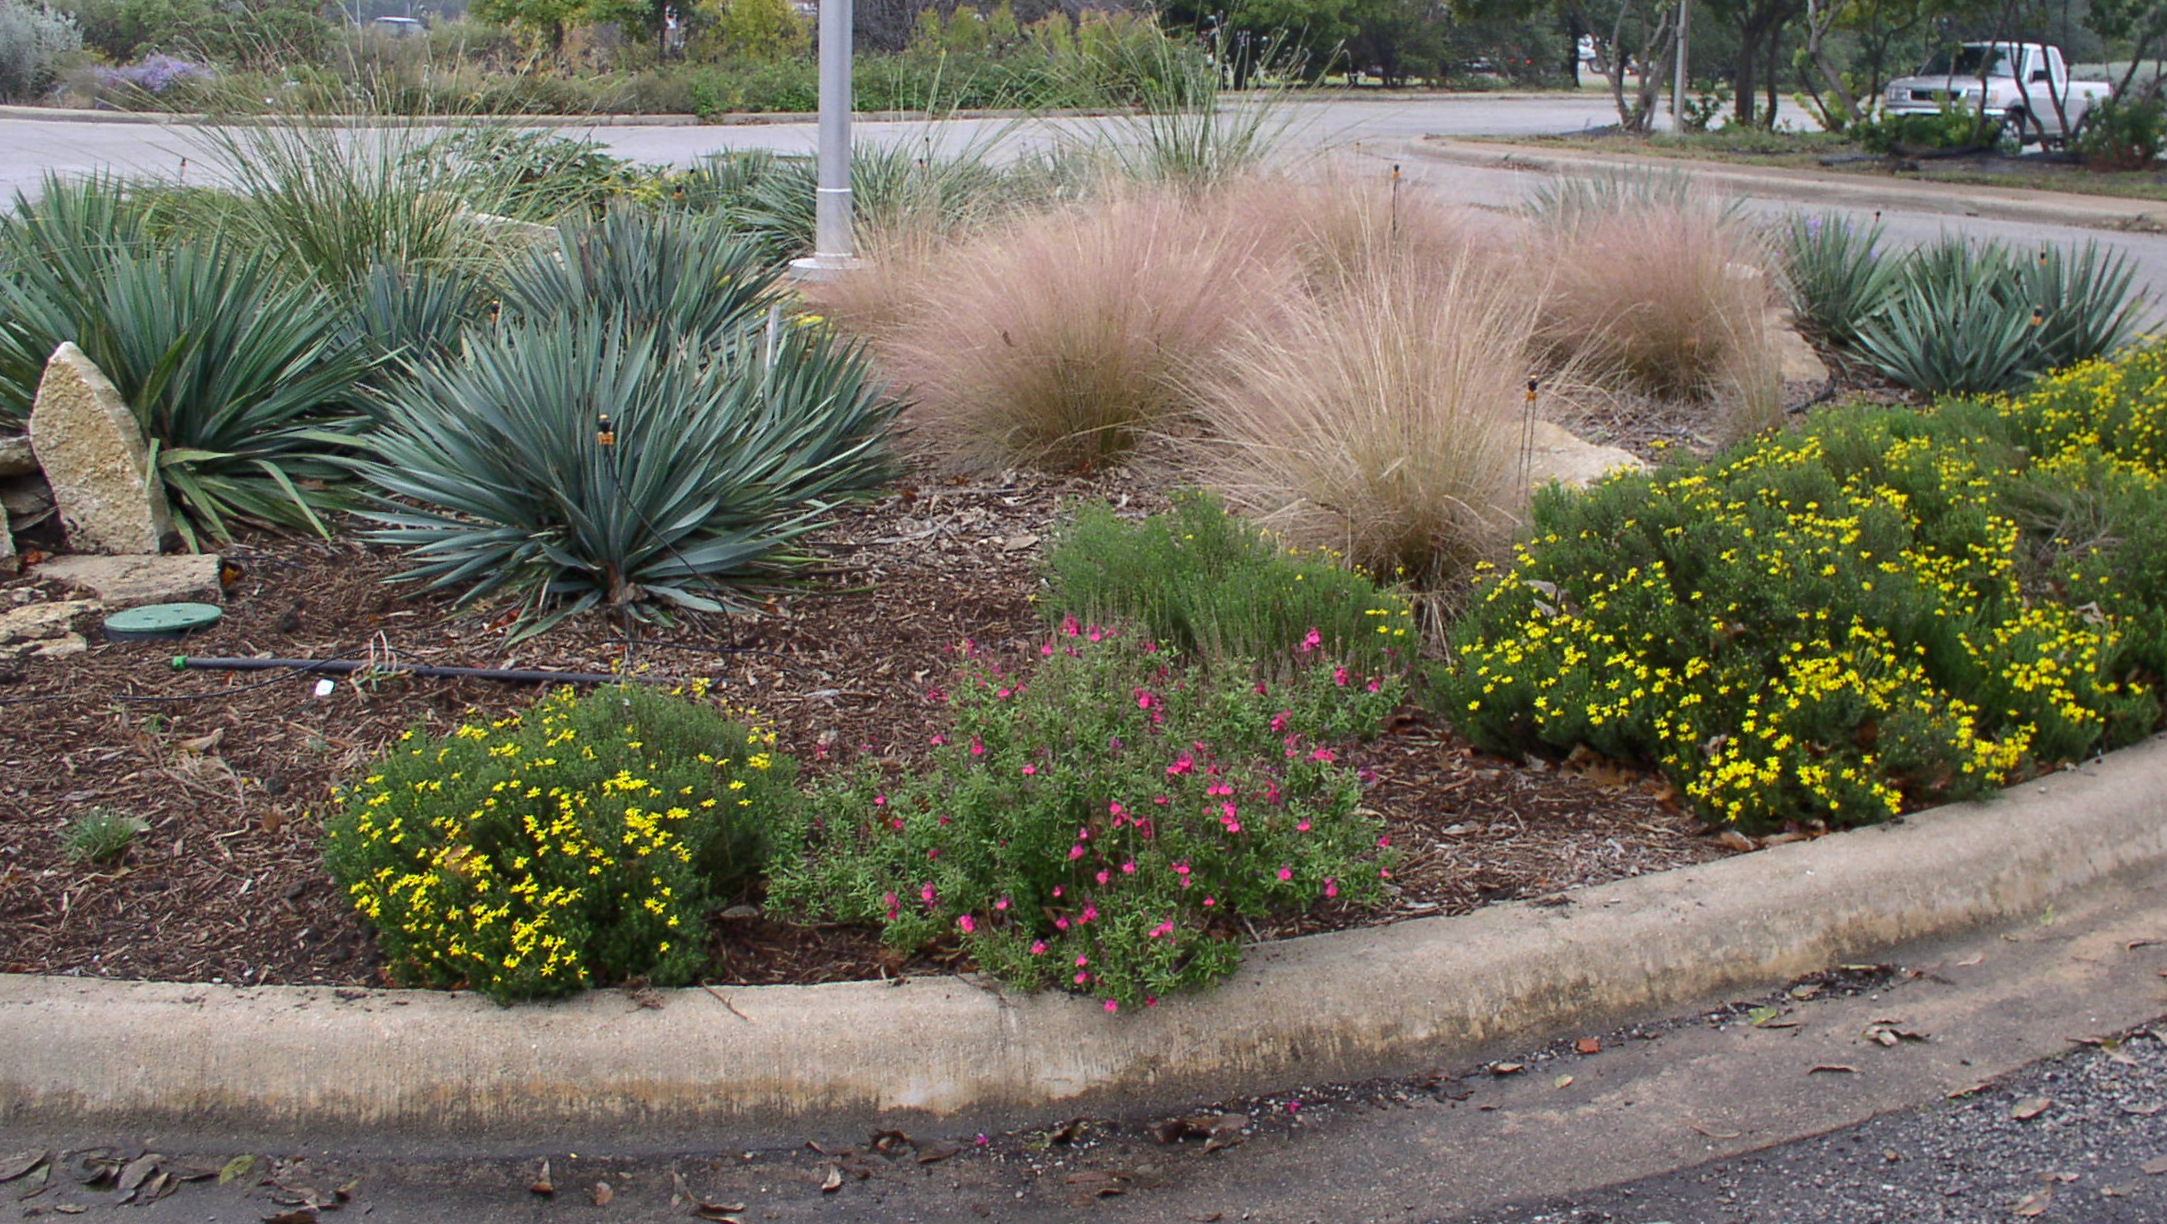 Native bunchgrass in the landscape for Grass plants for landscaping